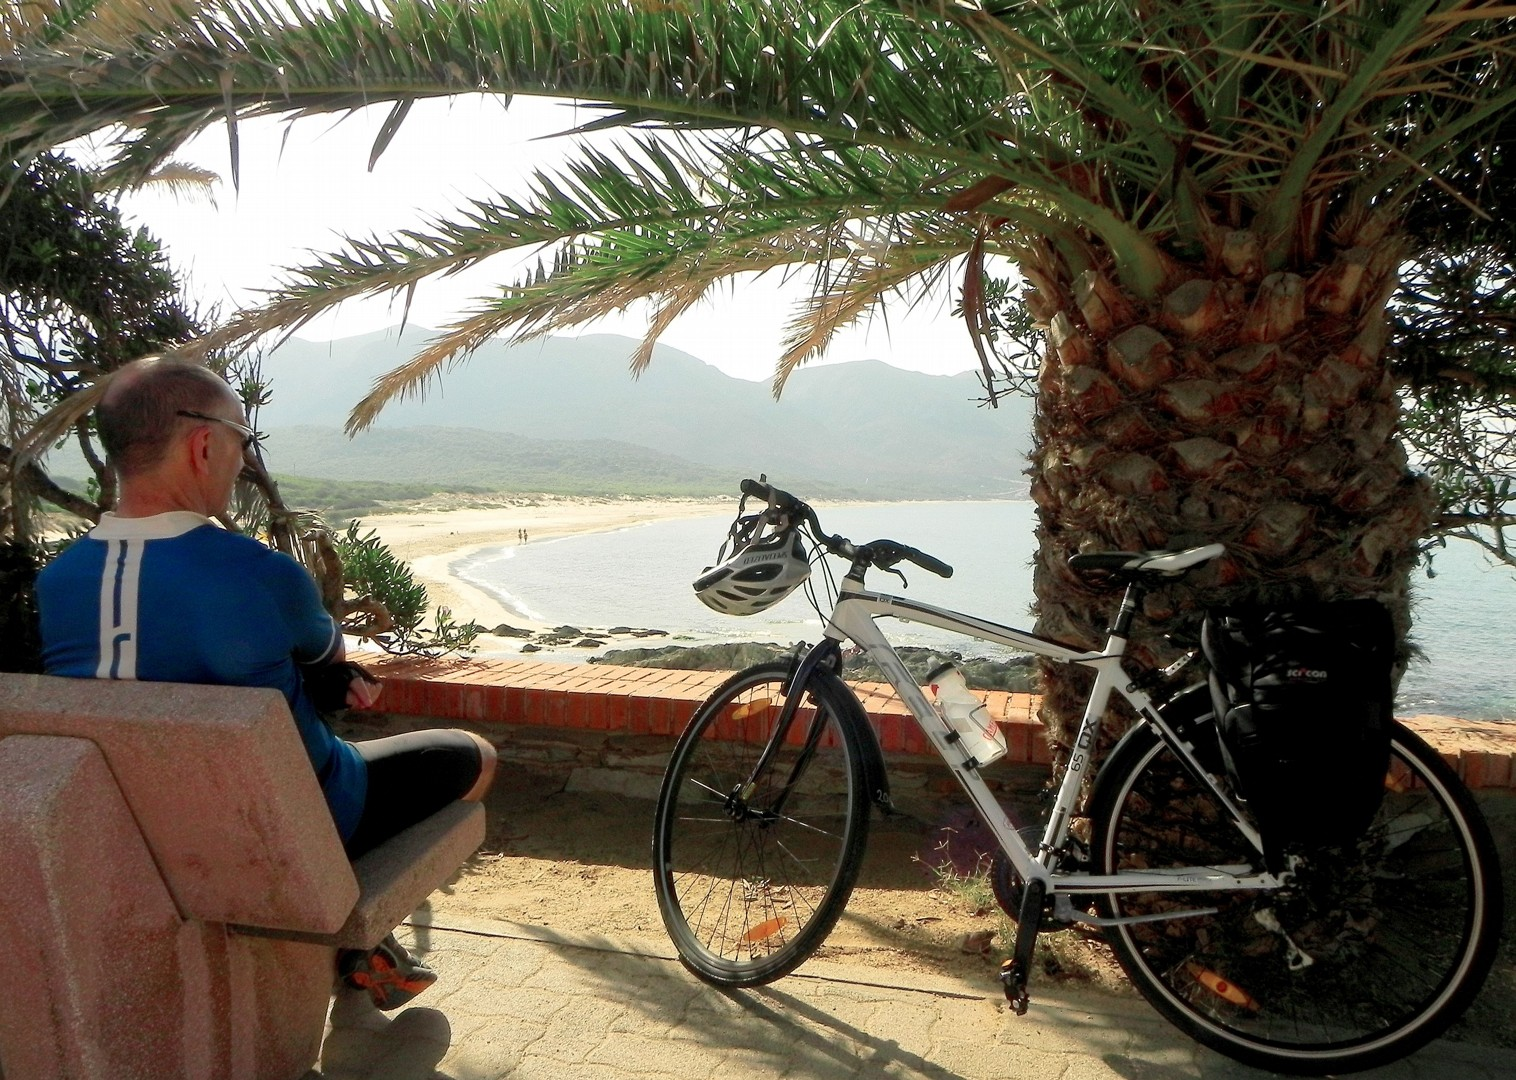 coastal-views-rest-stop-island-cycling-holiday.jpg - Italy - Sardinia - Island Flavours - Self-Guided Leisure Cycling Holiday - Leisure Cycling